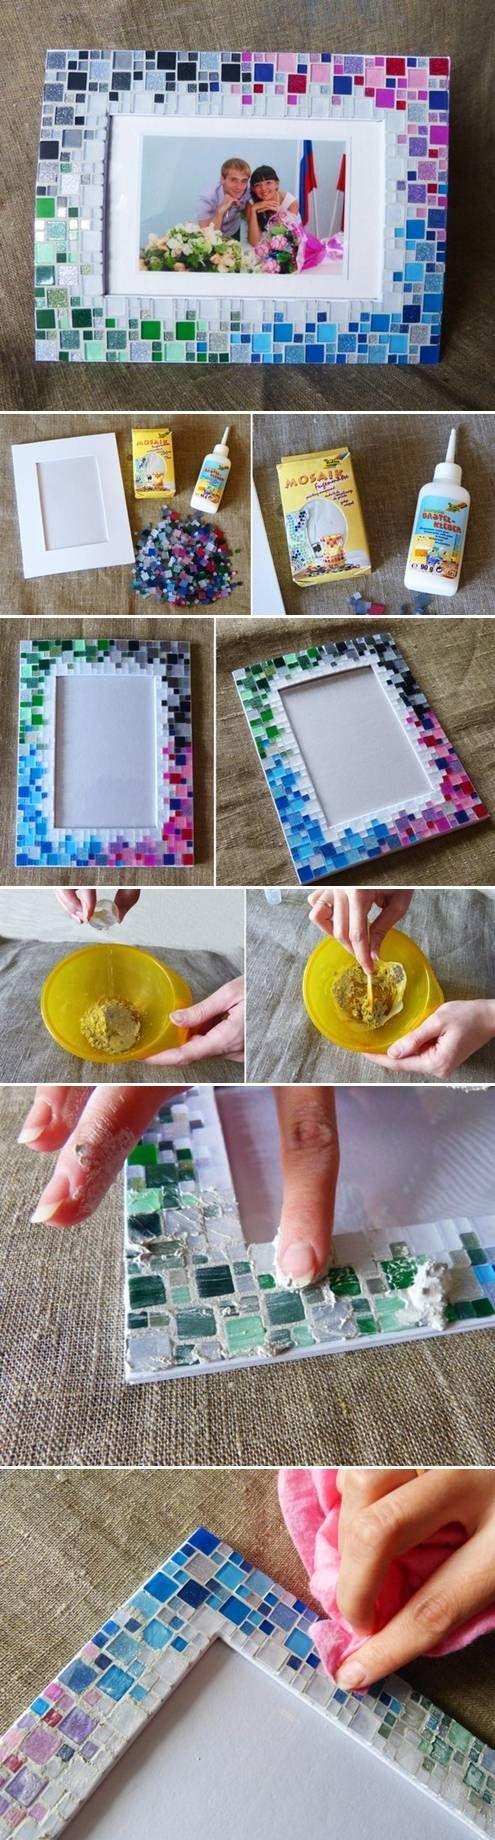 Diy Colorful Mosaic Picture Frame Cute Colorful Colors Diy Frame